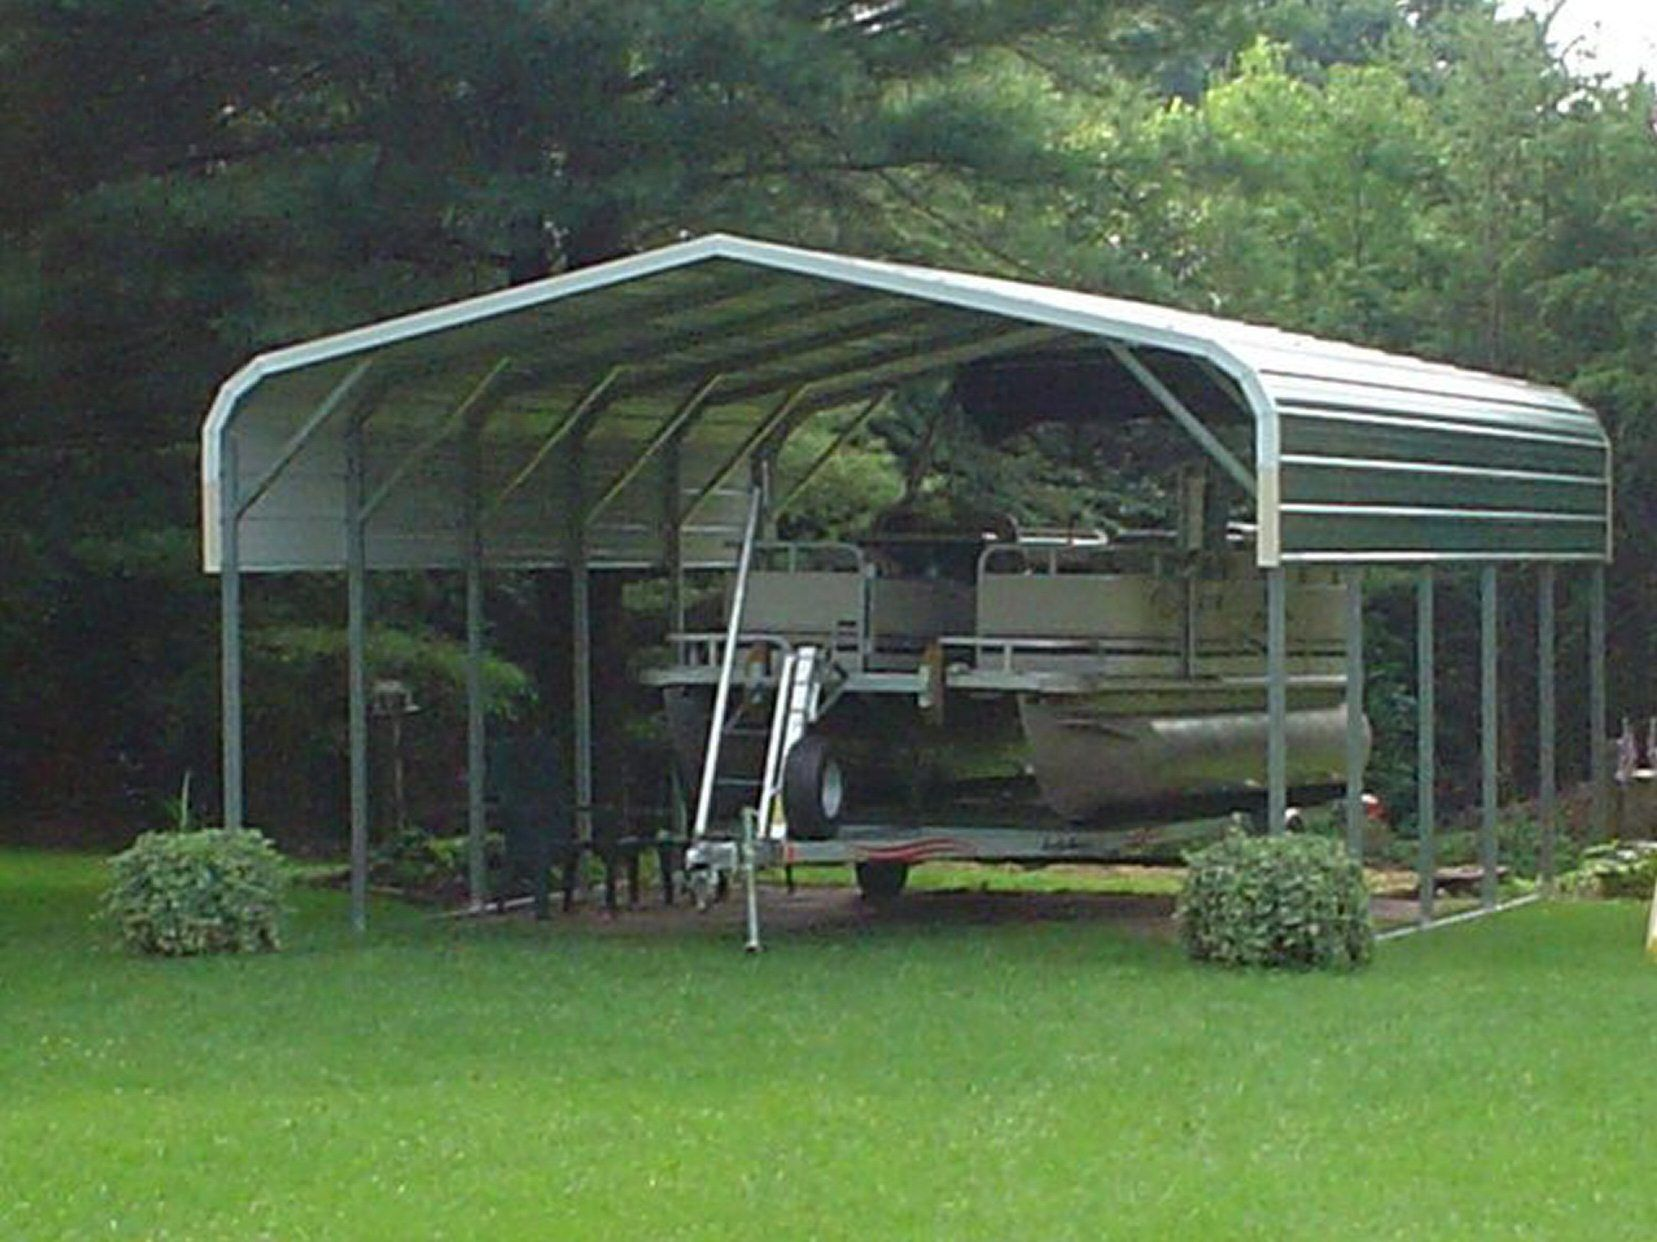 threads net awning stainless steel frame canopy running boat design aluminium awnings or material